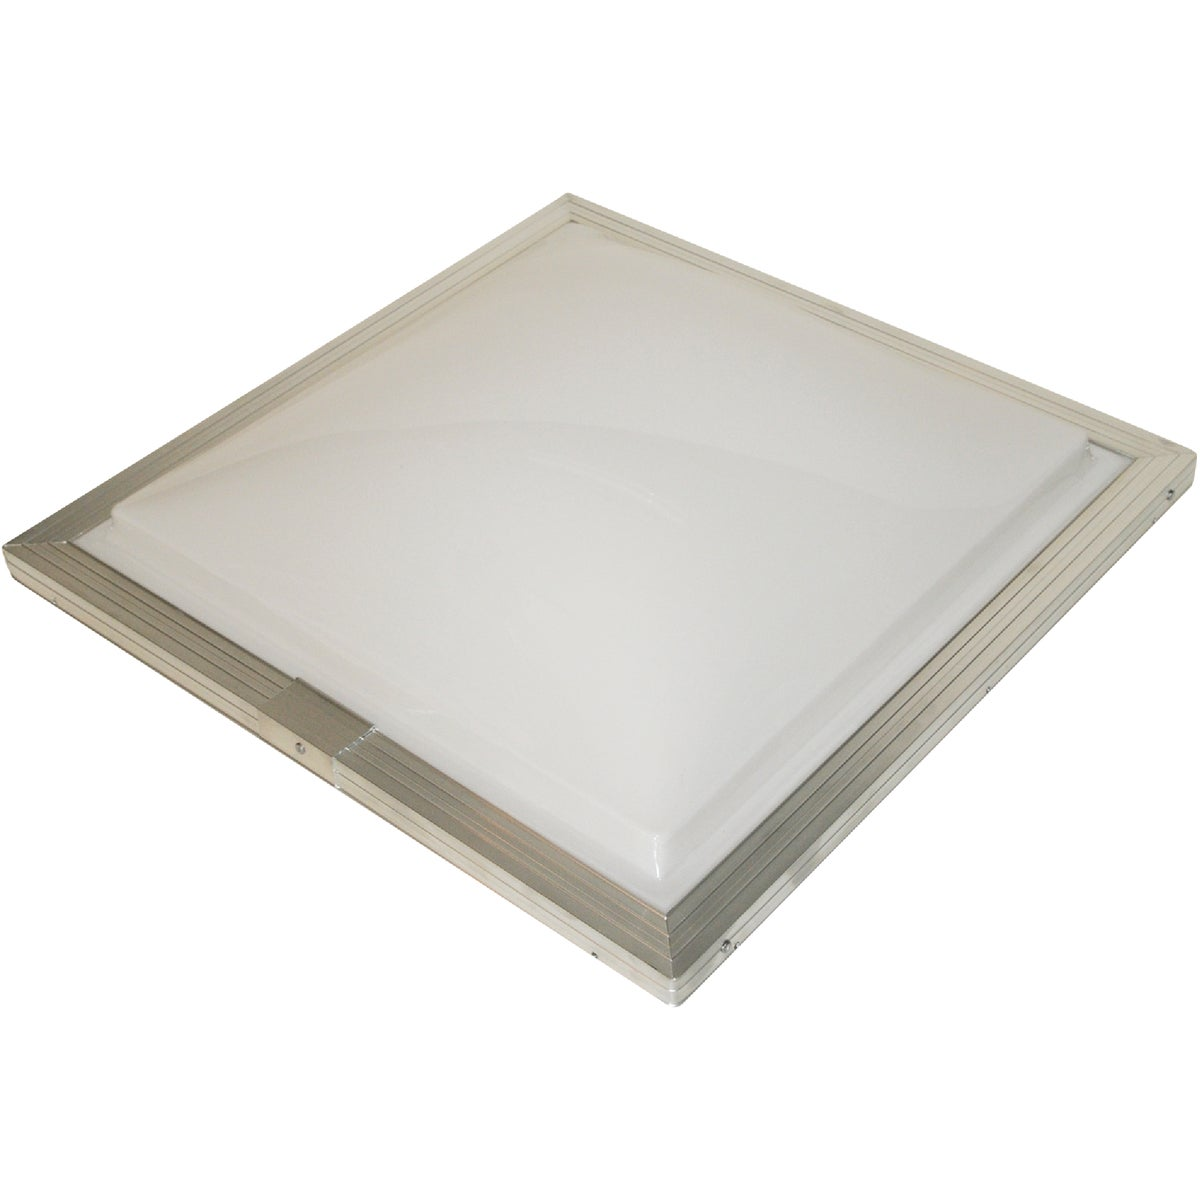 2X2 WHT DOUBLE SKYLIGHT - CMA2222WCN by Sun Tek Manuf Inc